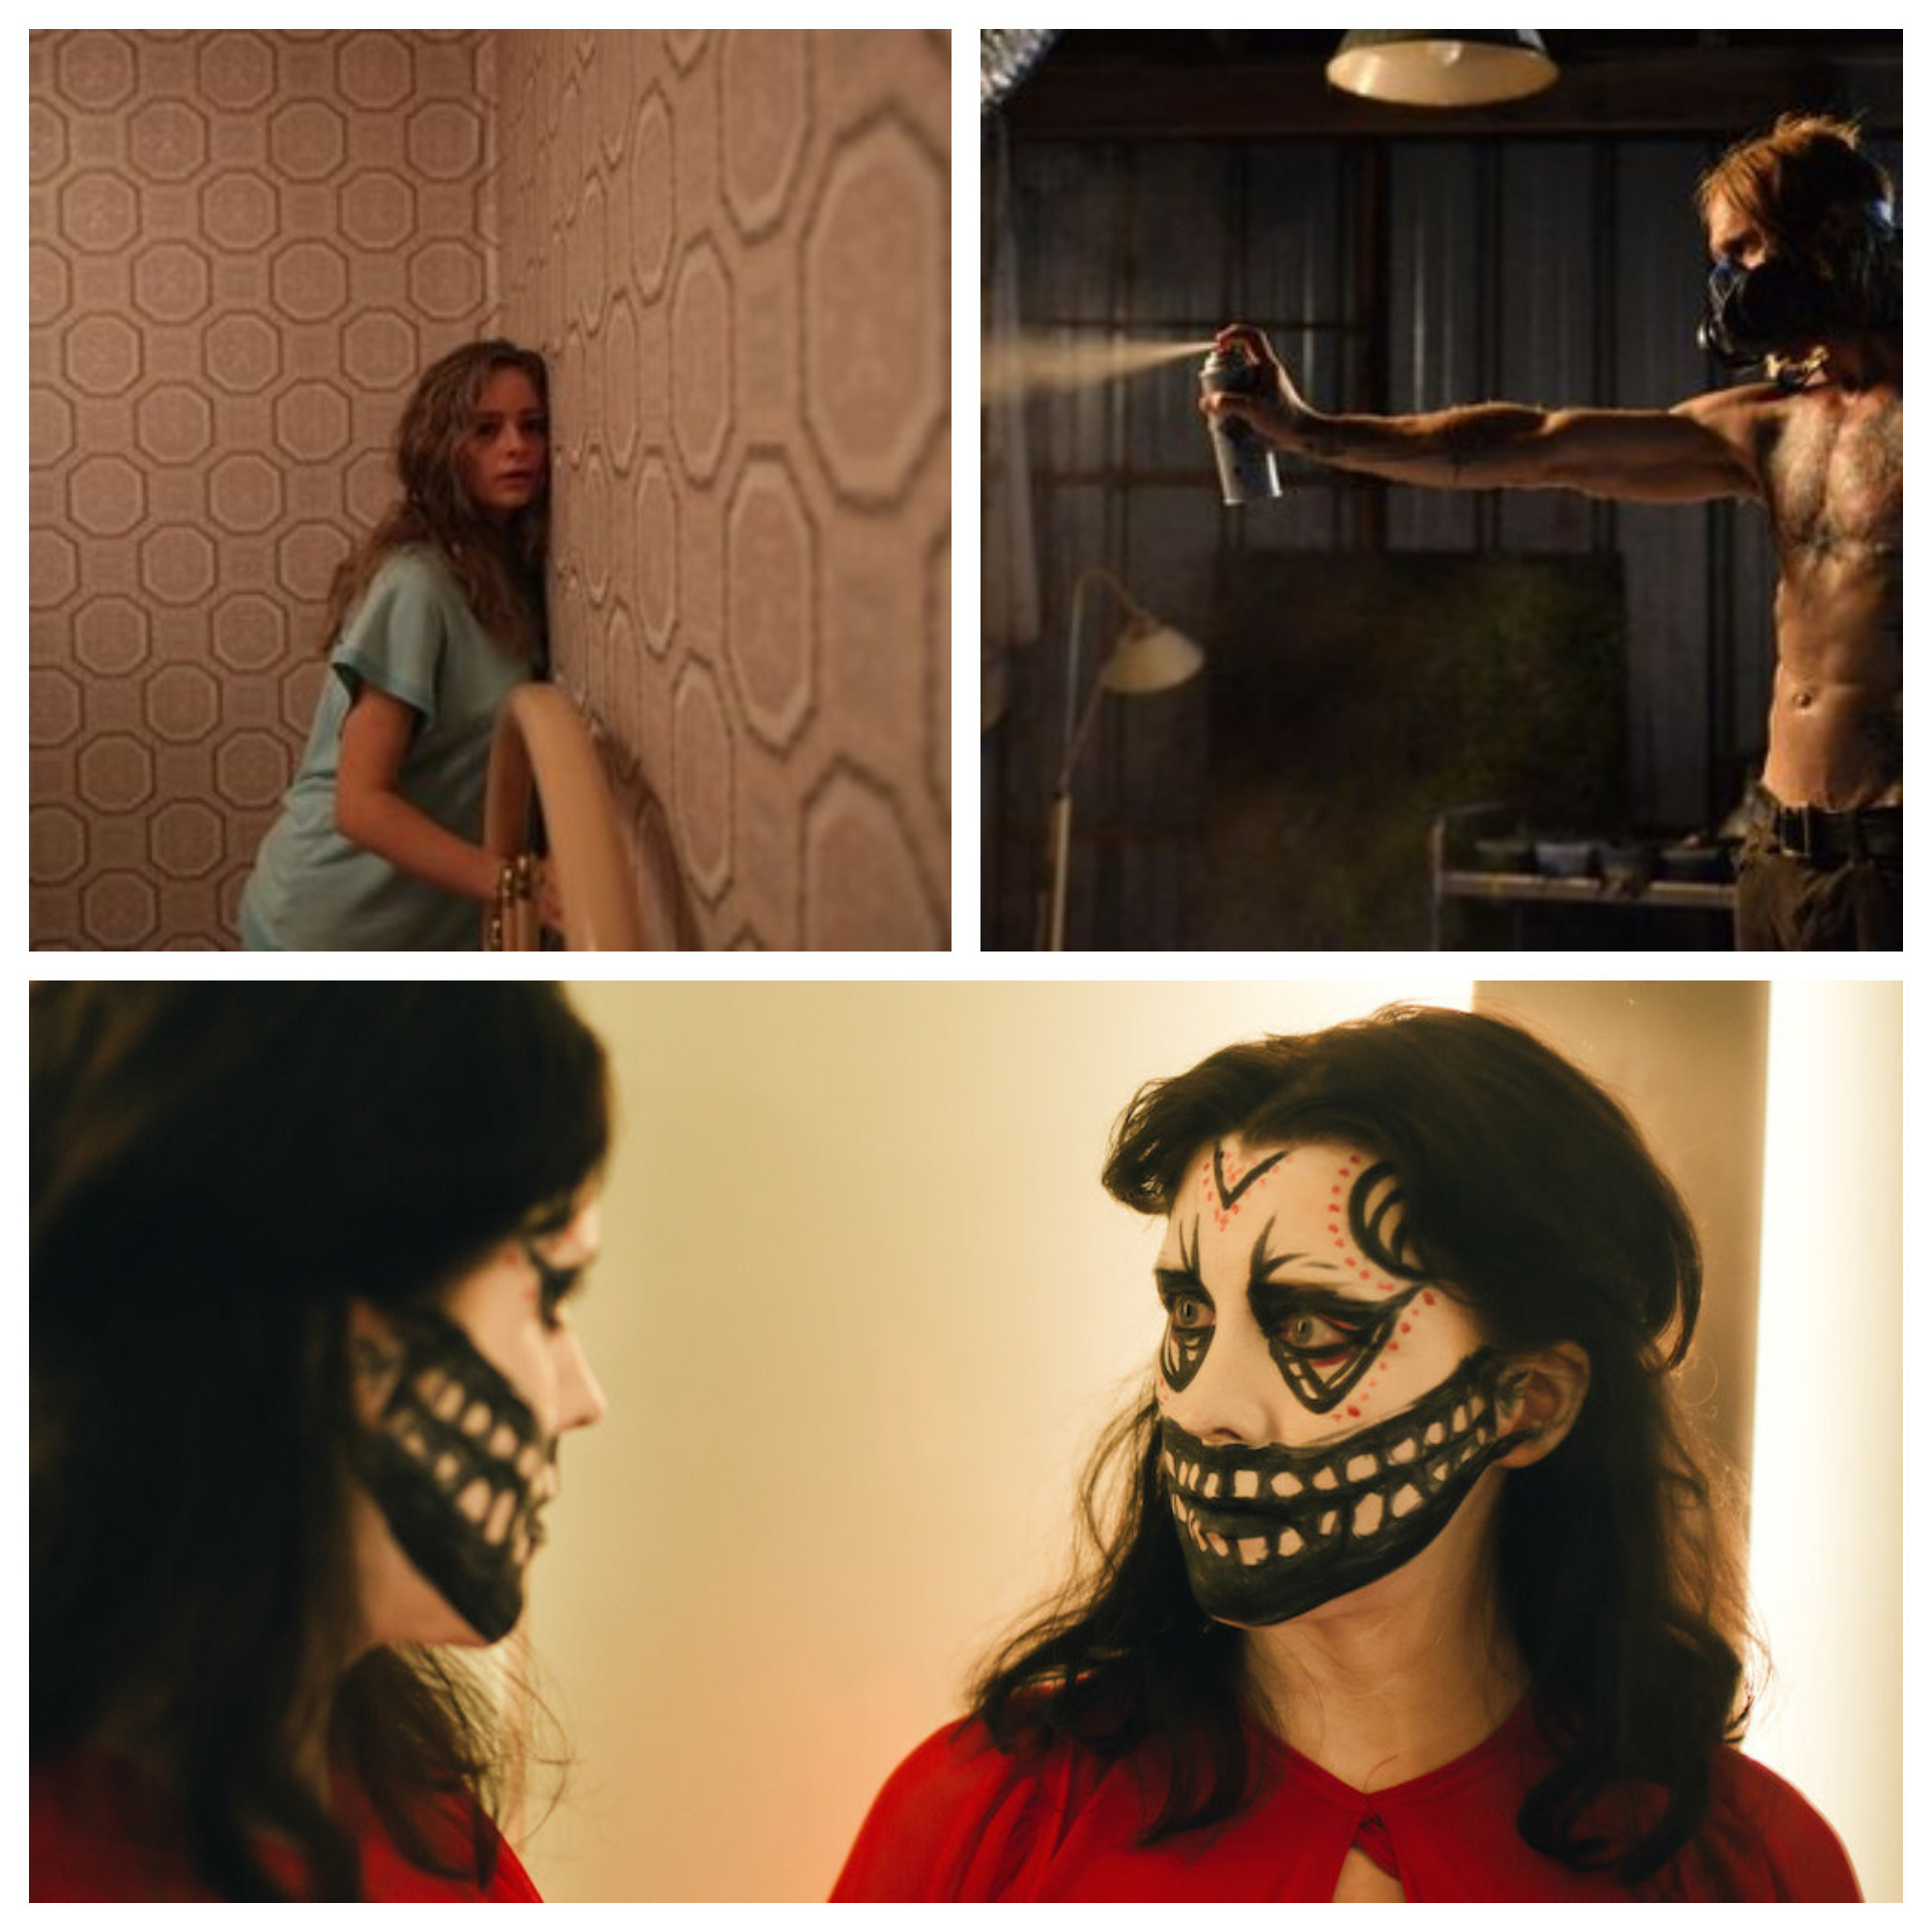 The 13 Best New Indie Horror Movies in 2017